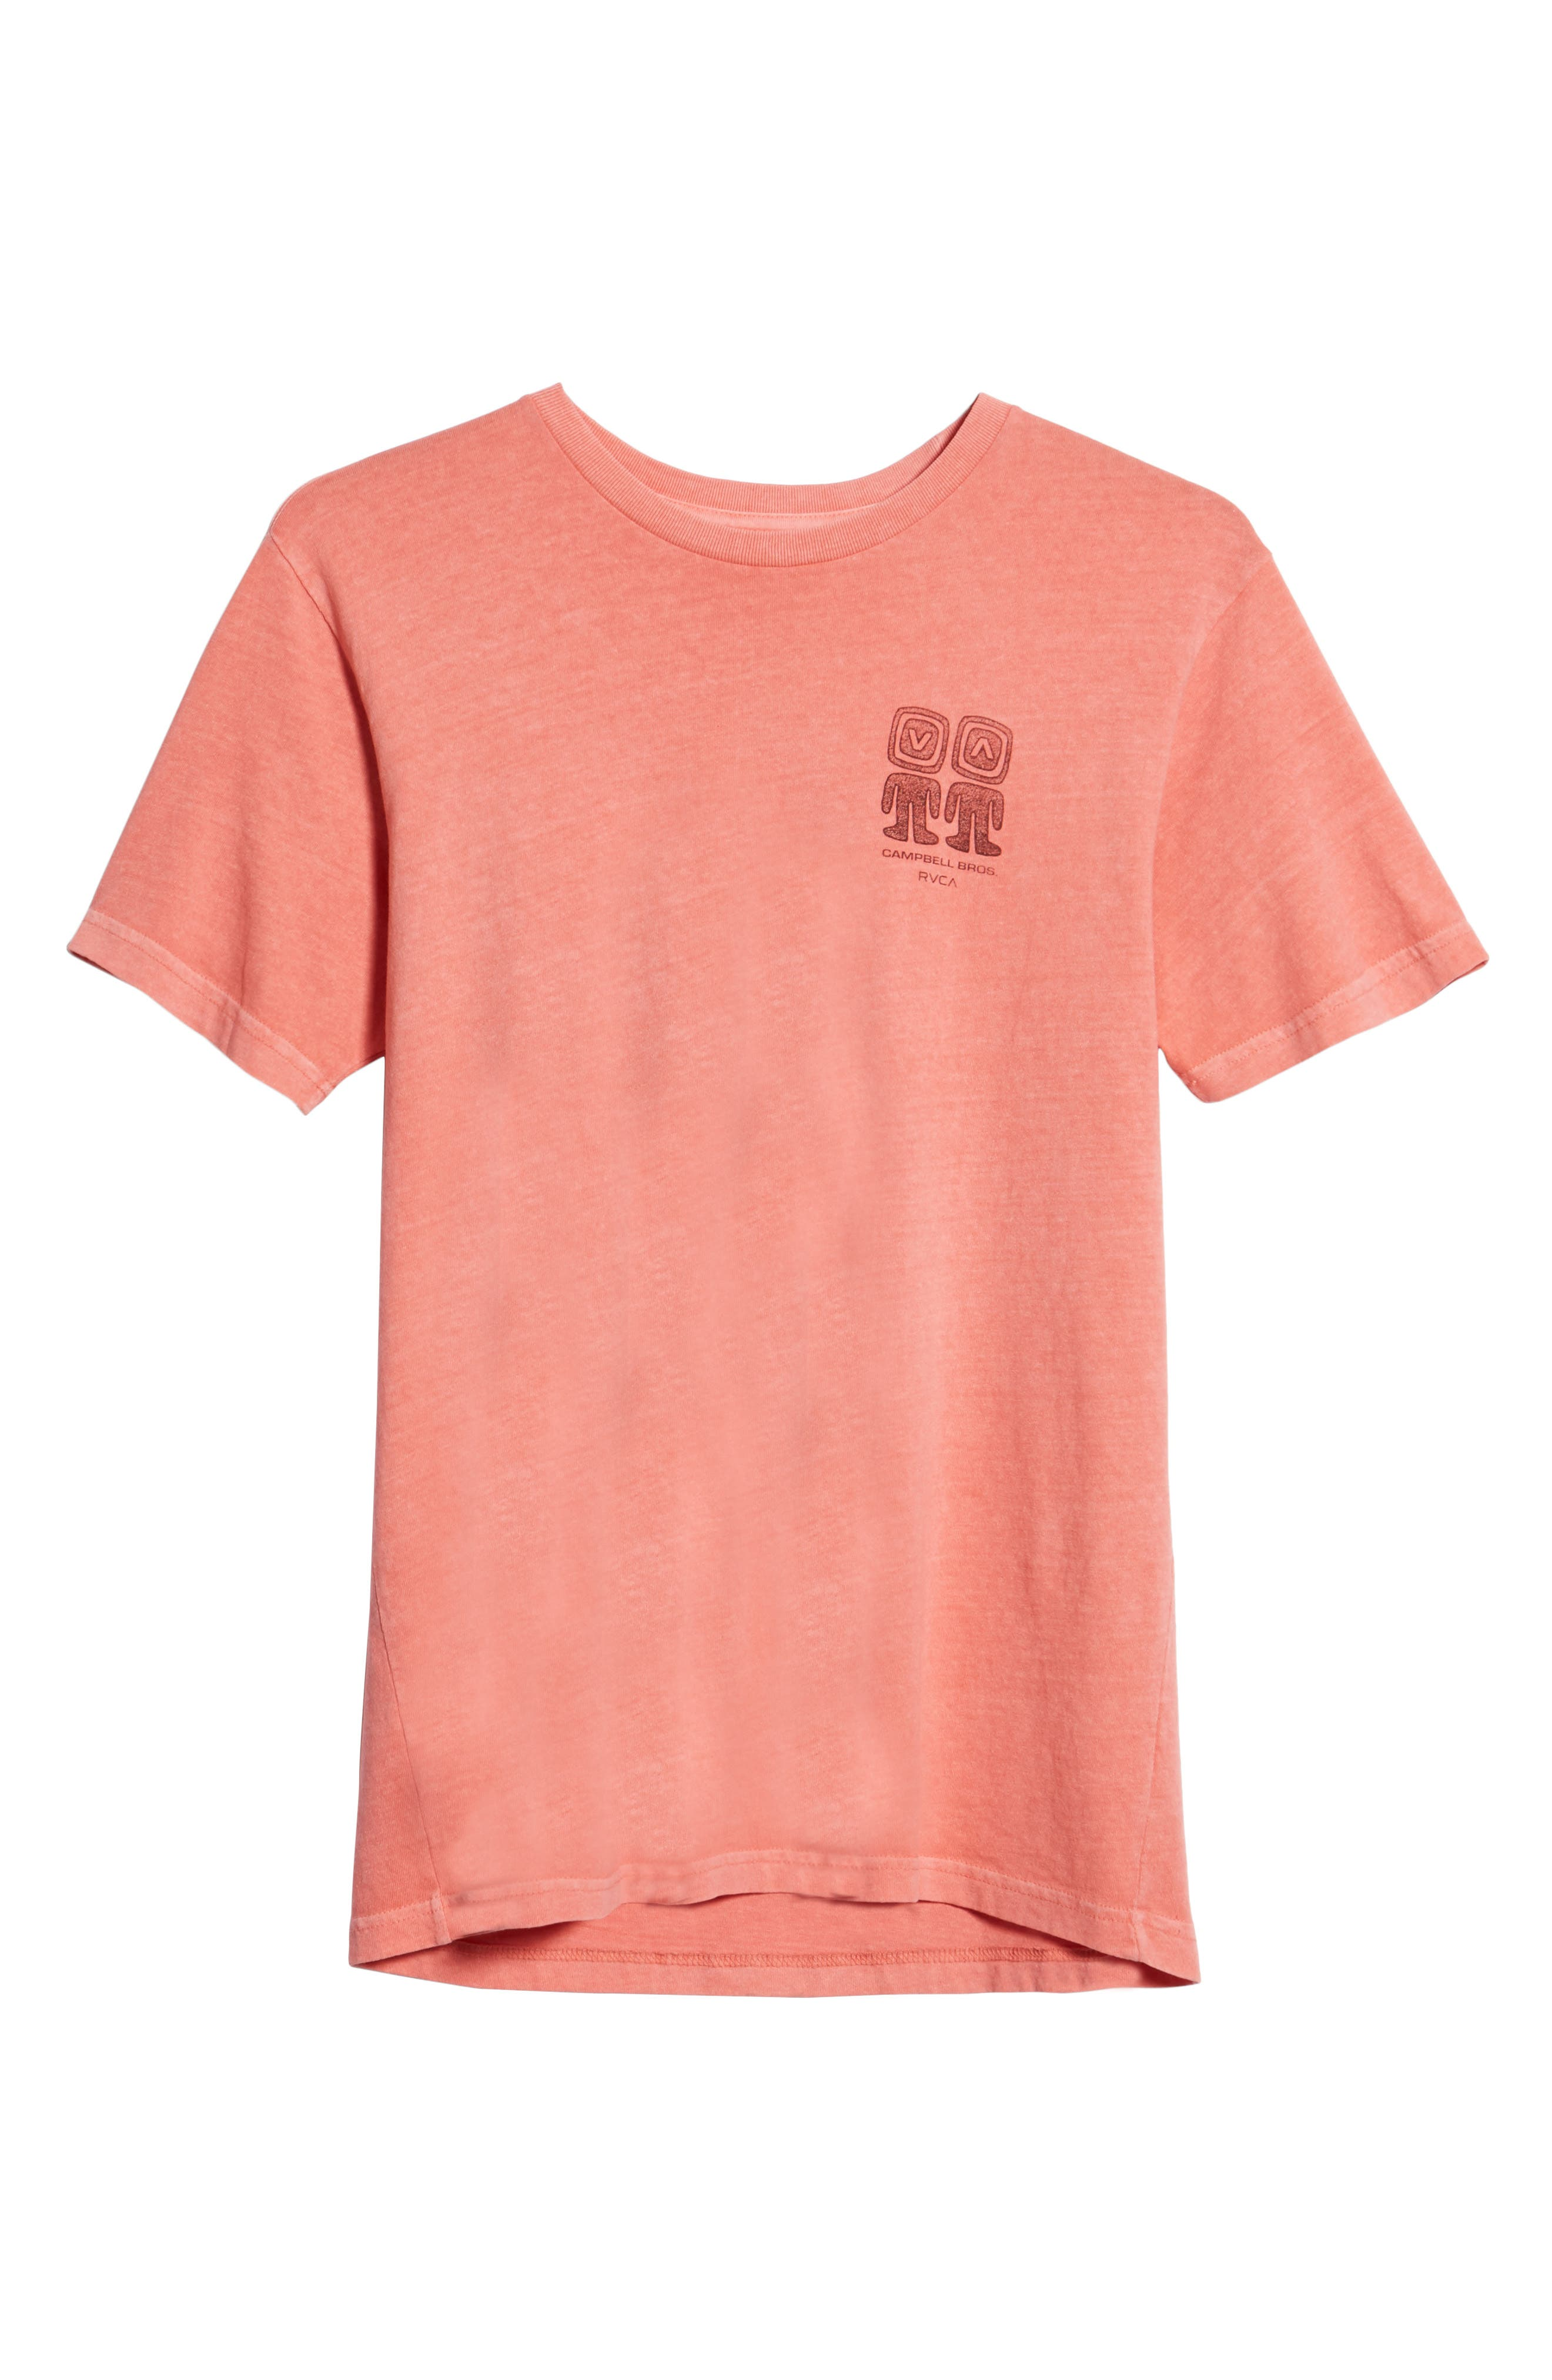 Campbell Brothers T-Shirt,                             Alternate thumbnail 6, color,                             PINK